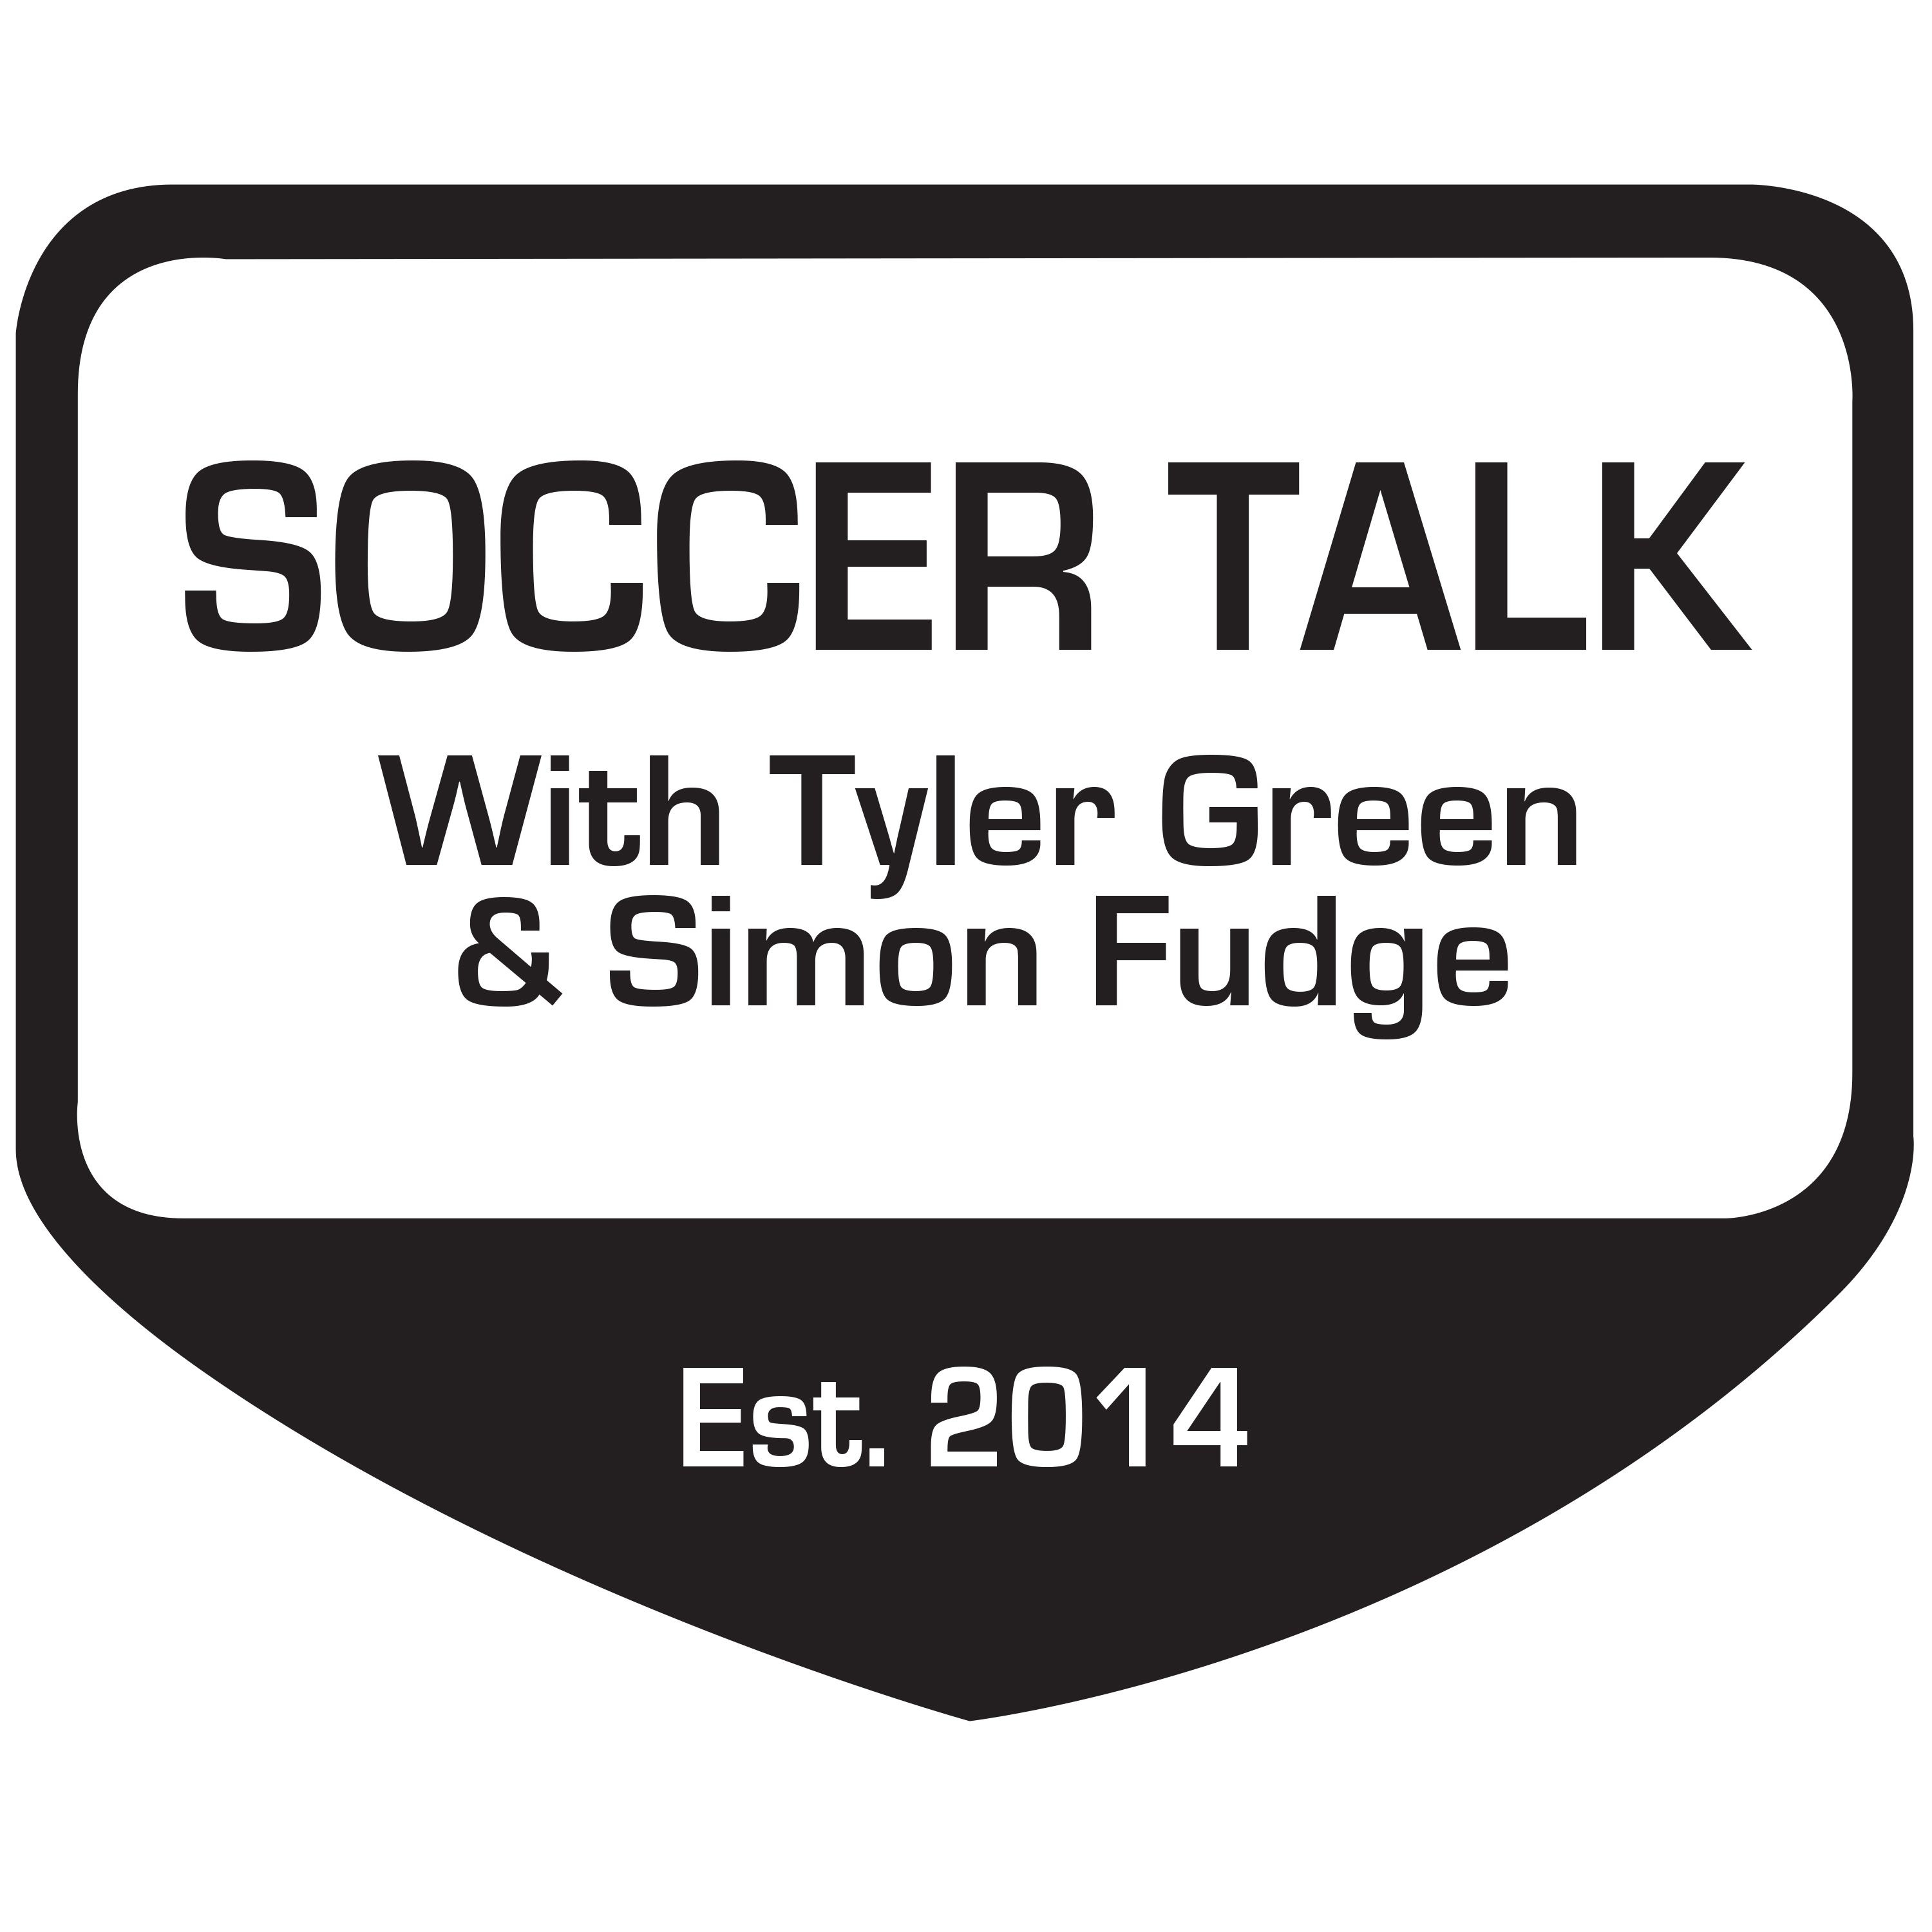 Soccer Talk with Tyler Green and Simon Fudge show art